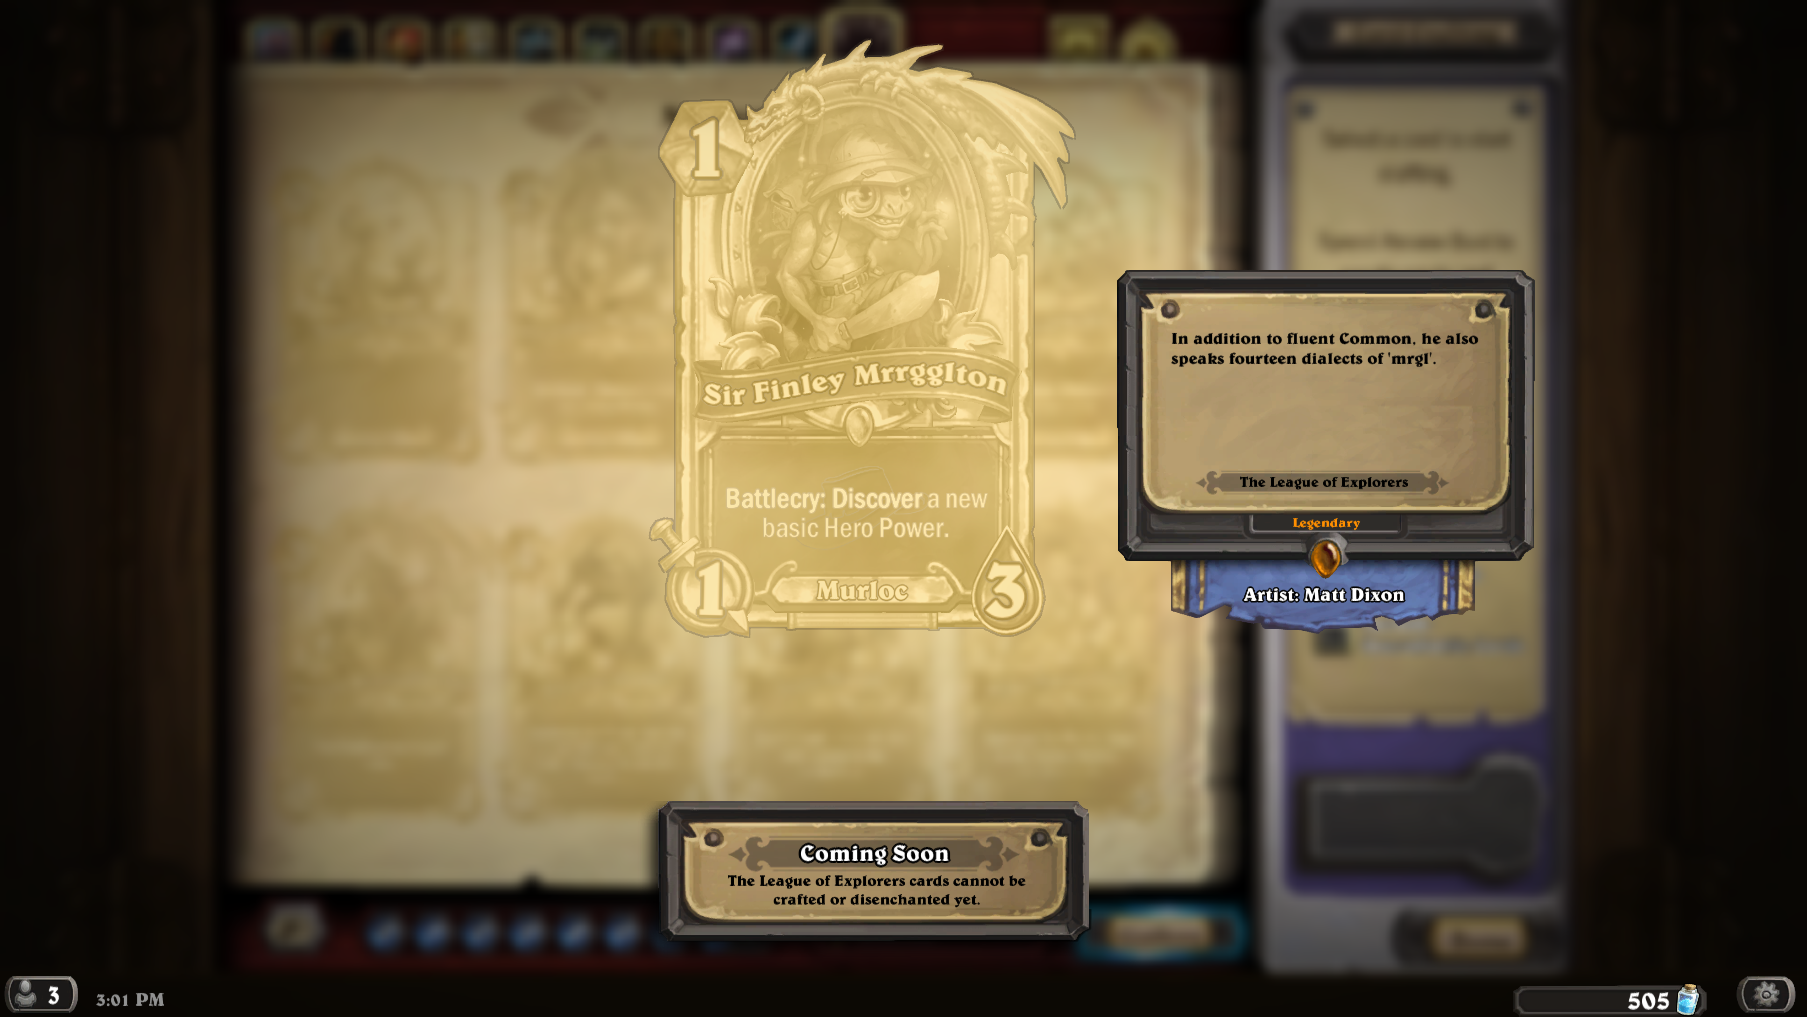 hearthstone screenshot 11-10-15 15.01.27.png